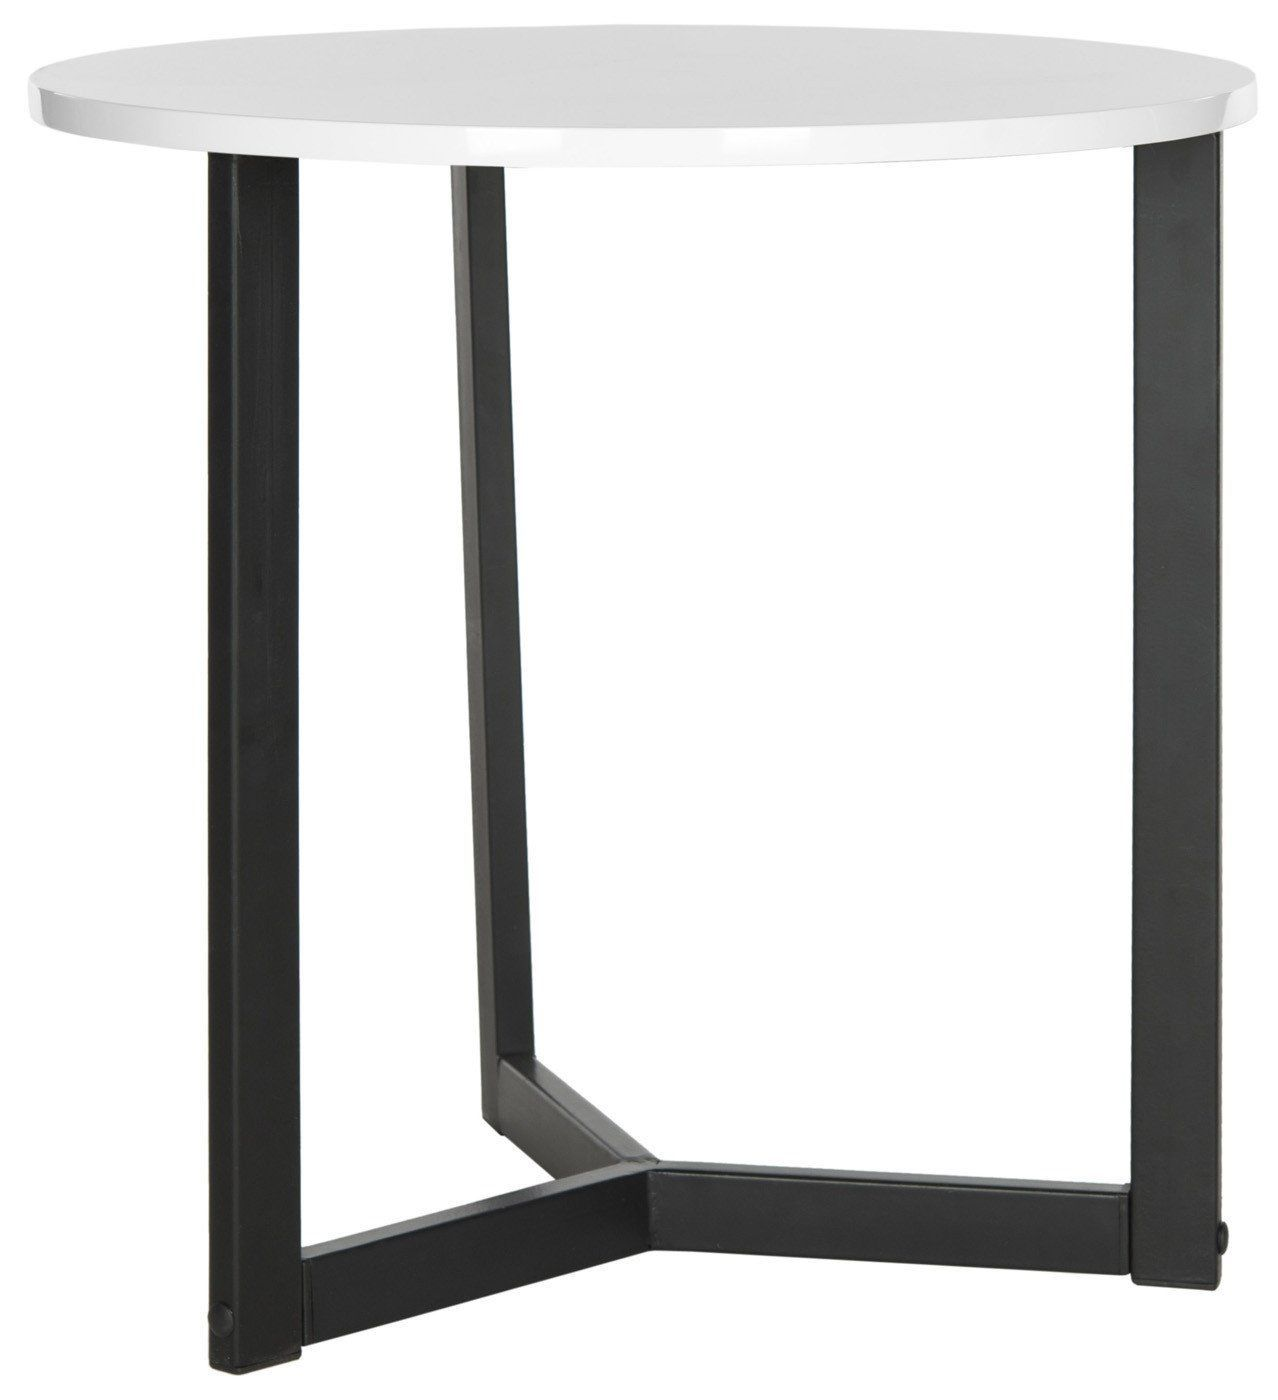 tables contemporary furniture side safavieh ballard lacquer end table white black accent set round coffee west elm entryway target chairside canadian tire patio blue outdoor extra